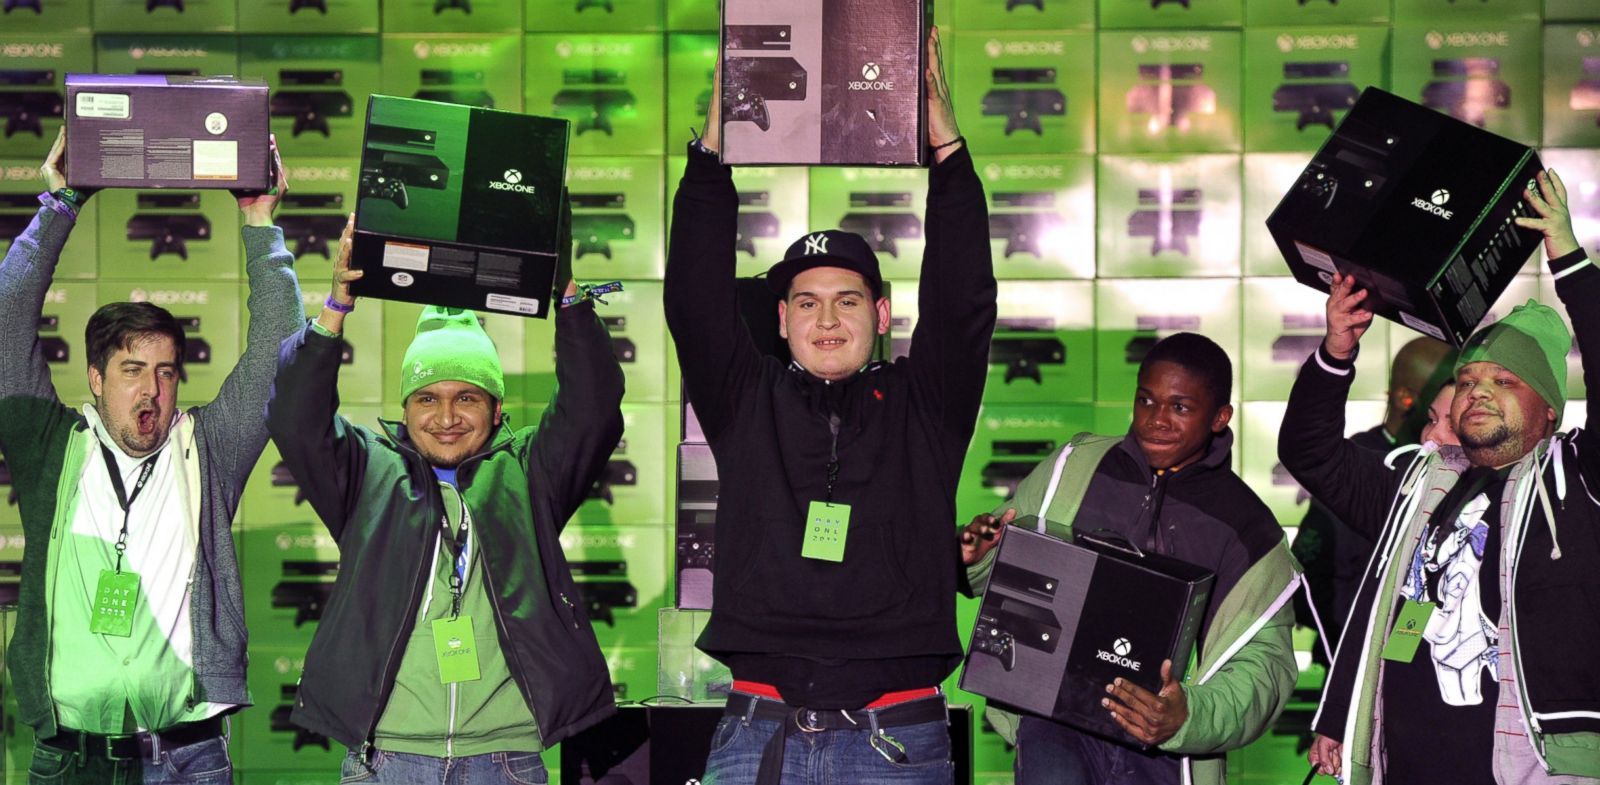 PHOTO: The first fans in the U.S. get their hands on Xbox One at Best Buy in New York on Nov. 22, 2013.